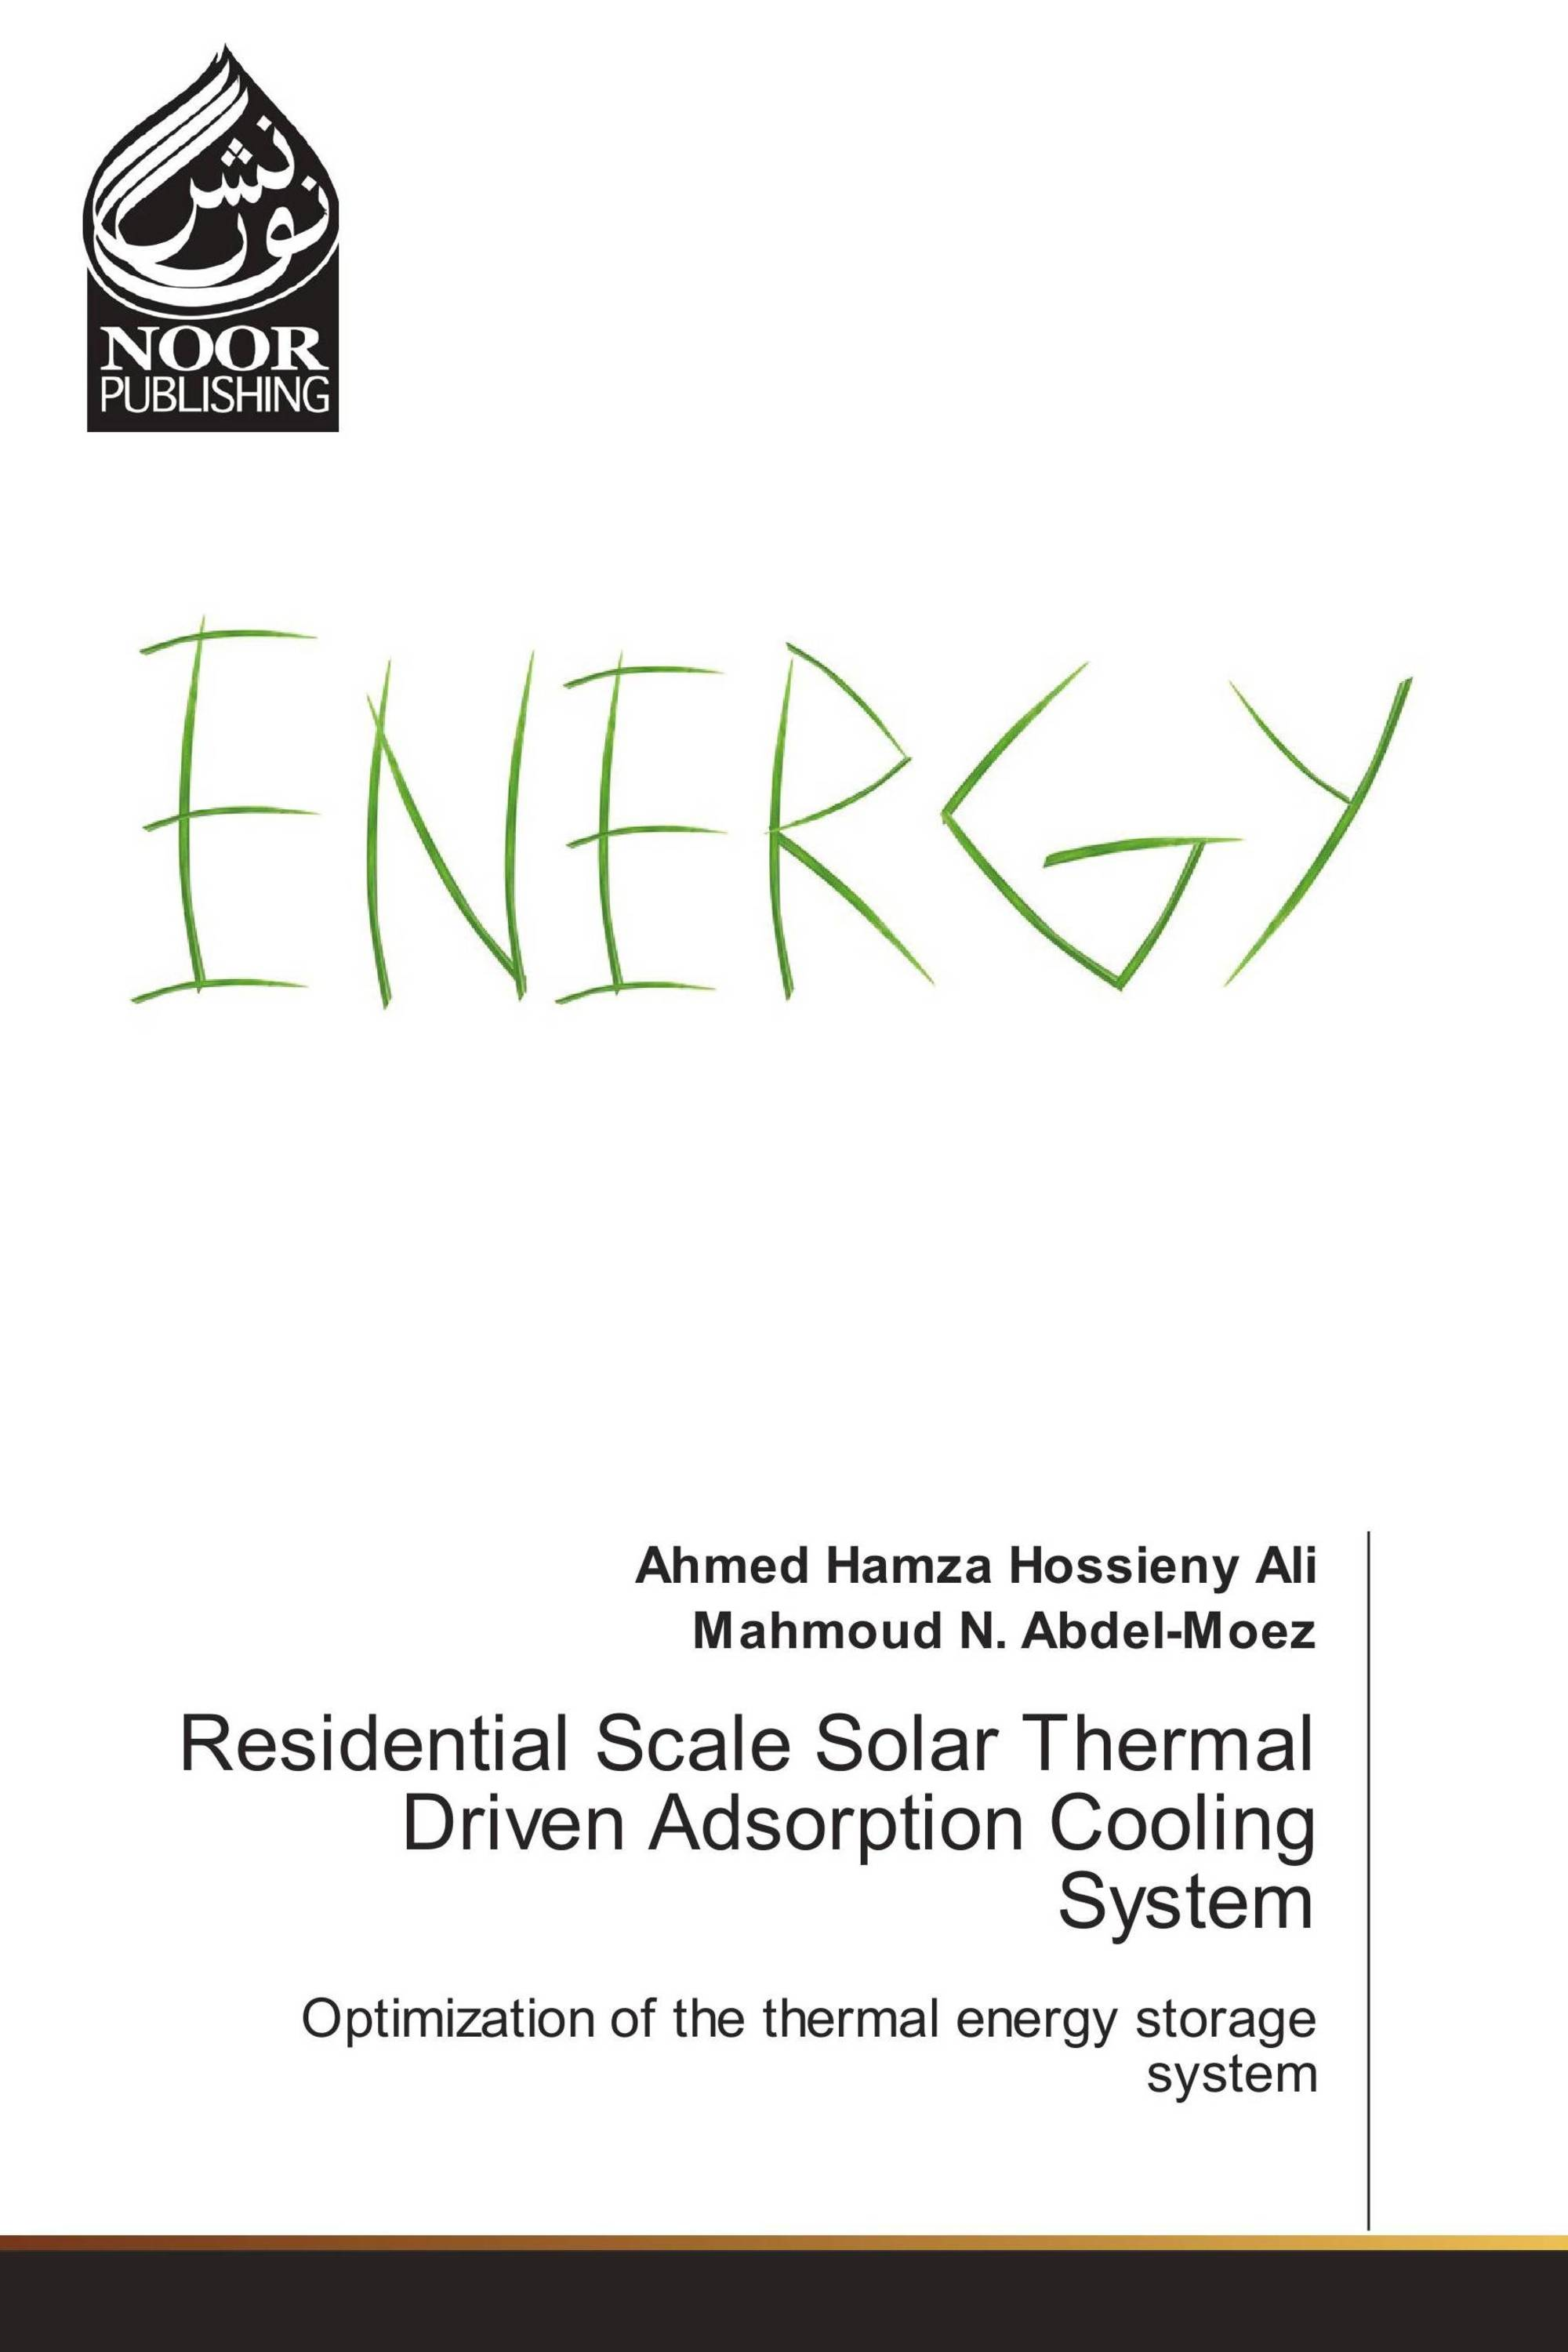 Residential Scale Solar Thermal Driven Adsorption Cooling System